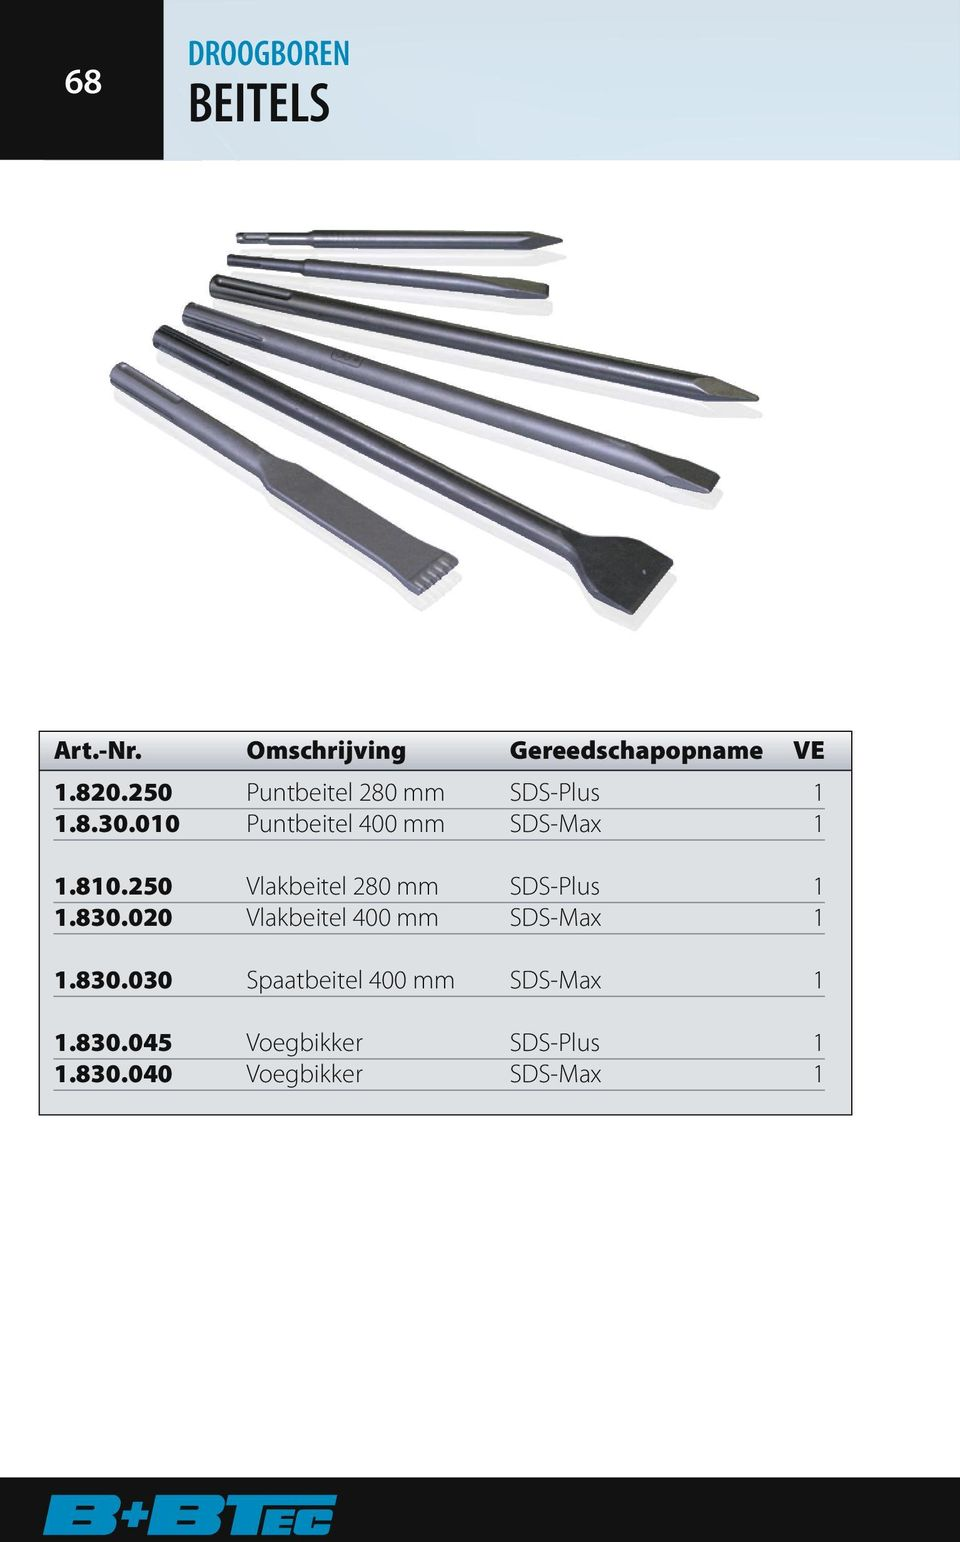 250 Vlakbeitel 280 mm SDS-Plus 1 1.830.020 Vlakbeitel 400 mm SDS-Max 1 1.830.030 Spaatbeitel 400 mm SDS-Max 1 1.